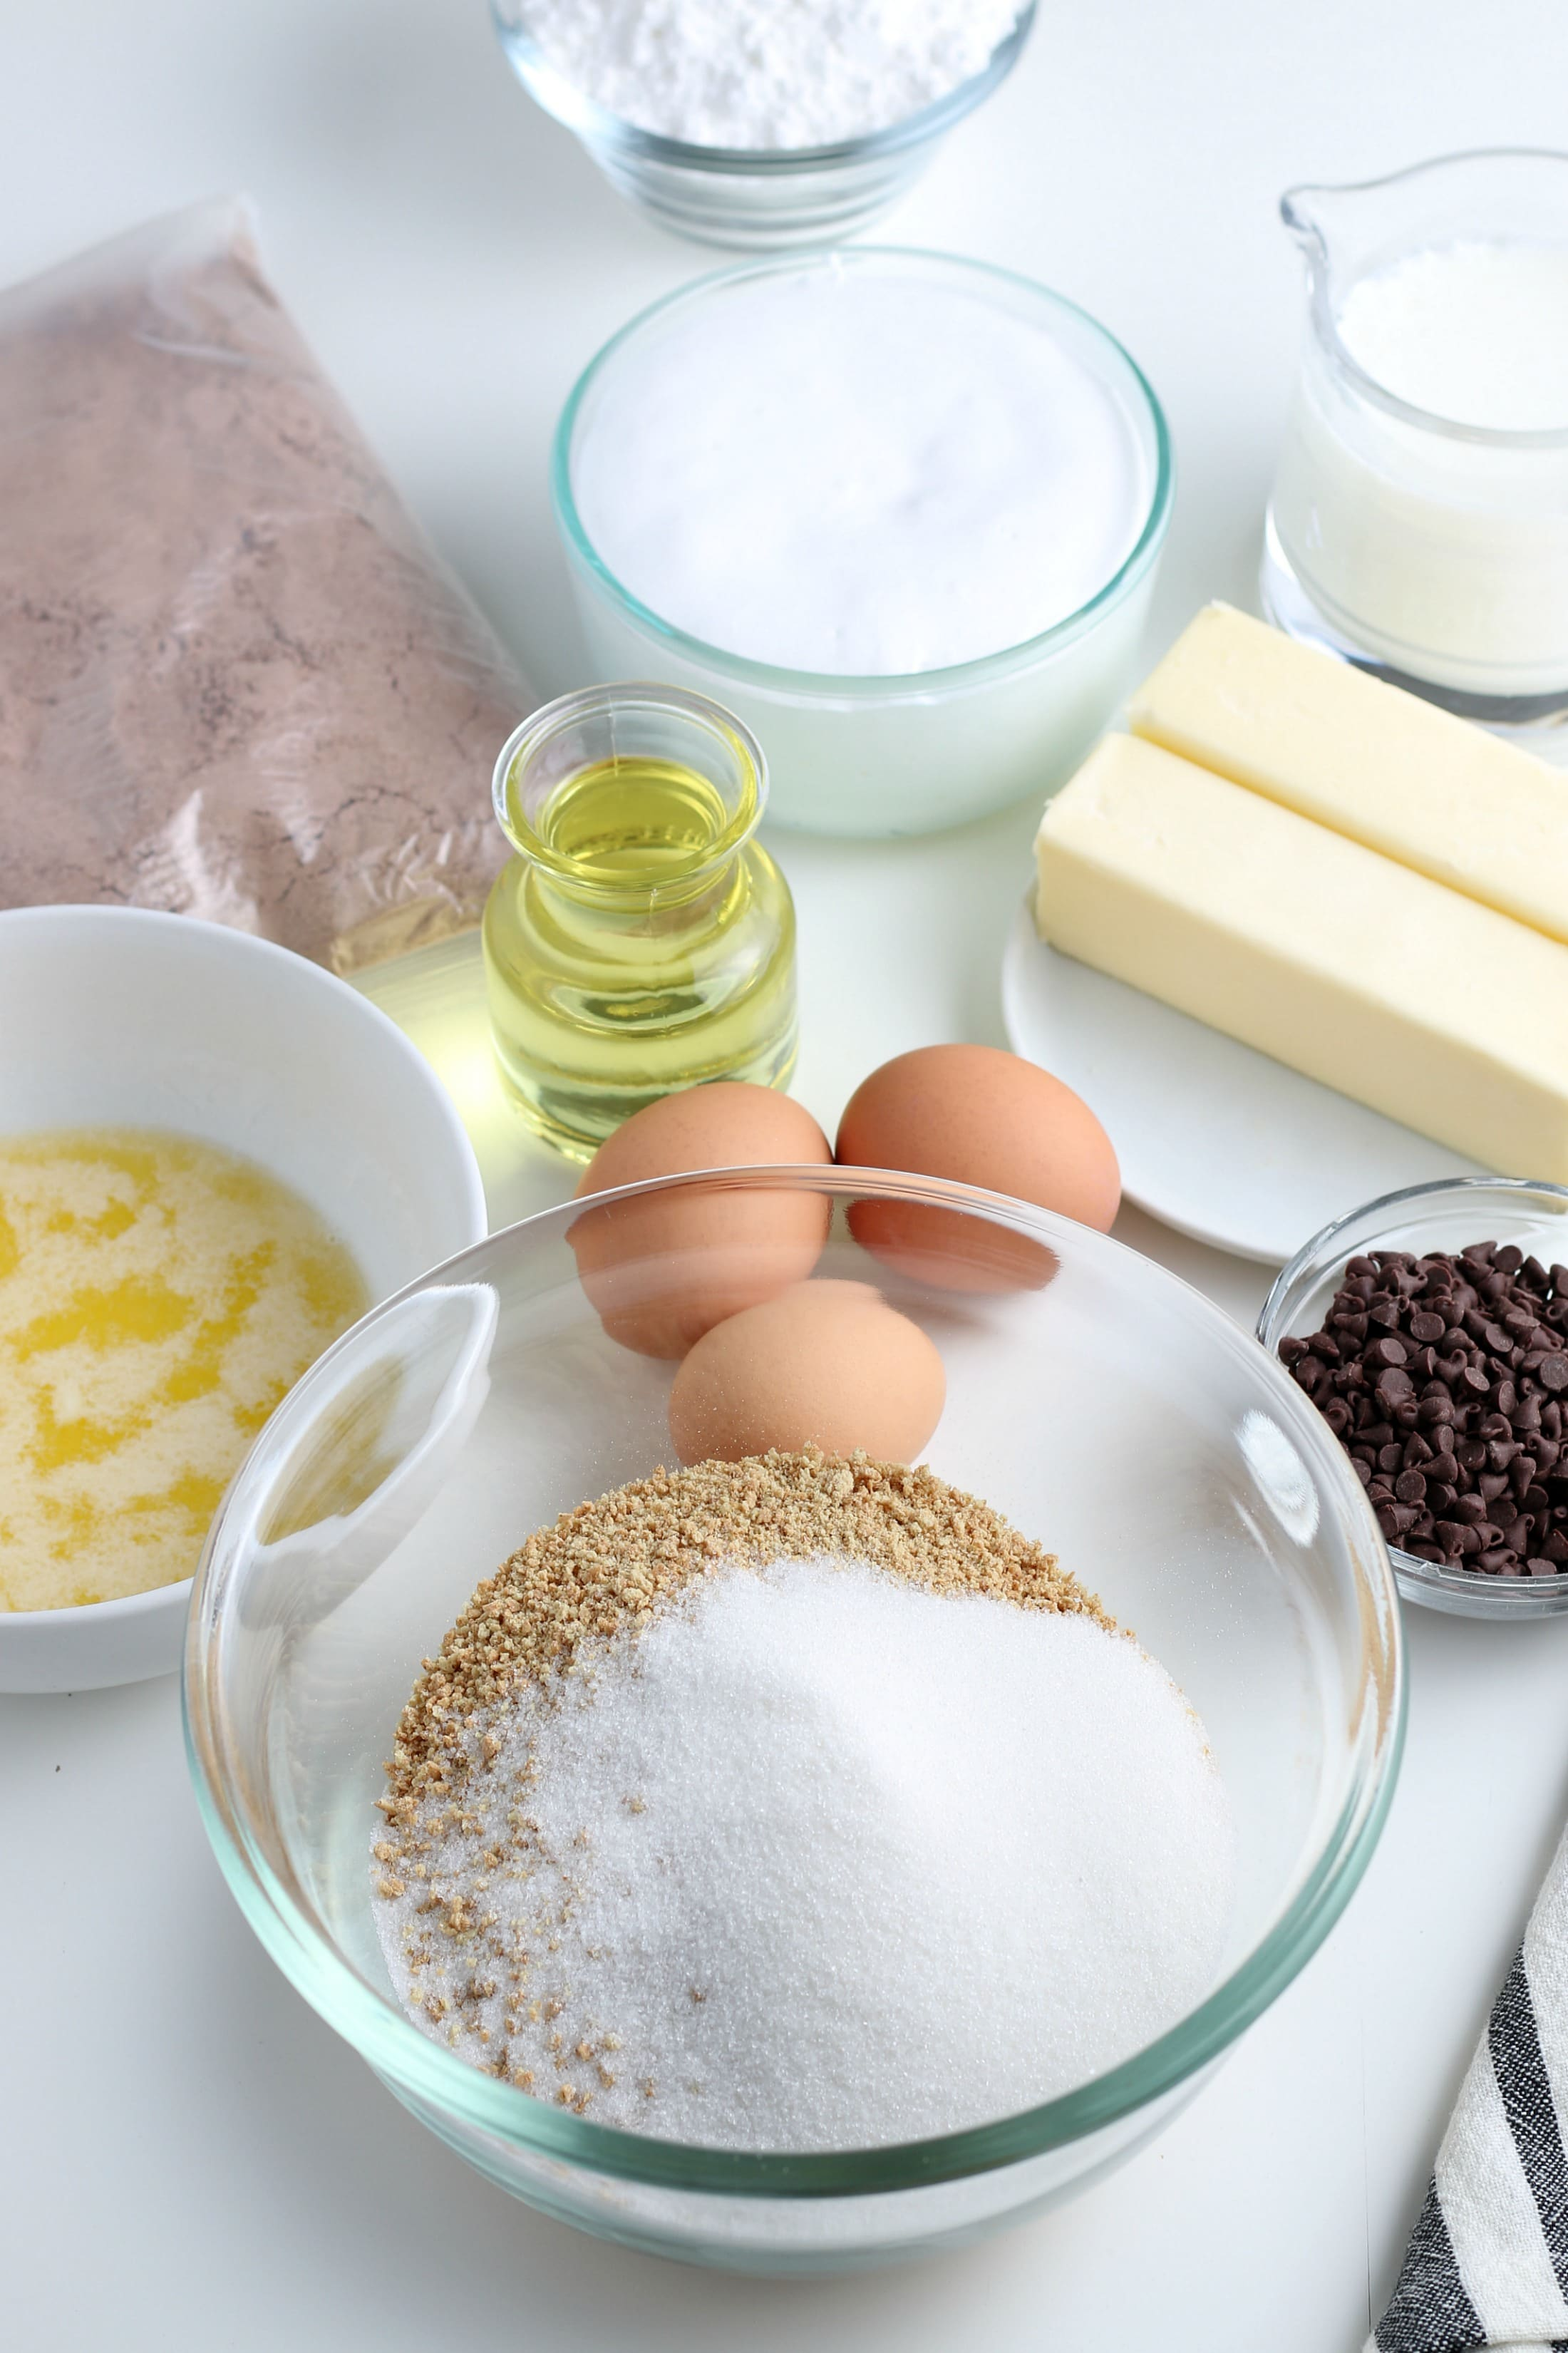 ingredients for graham cracker crust in a glass bowl.